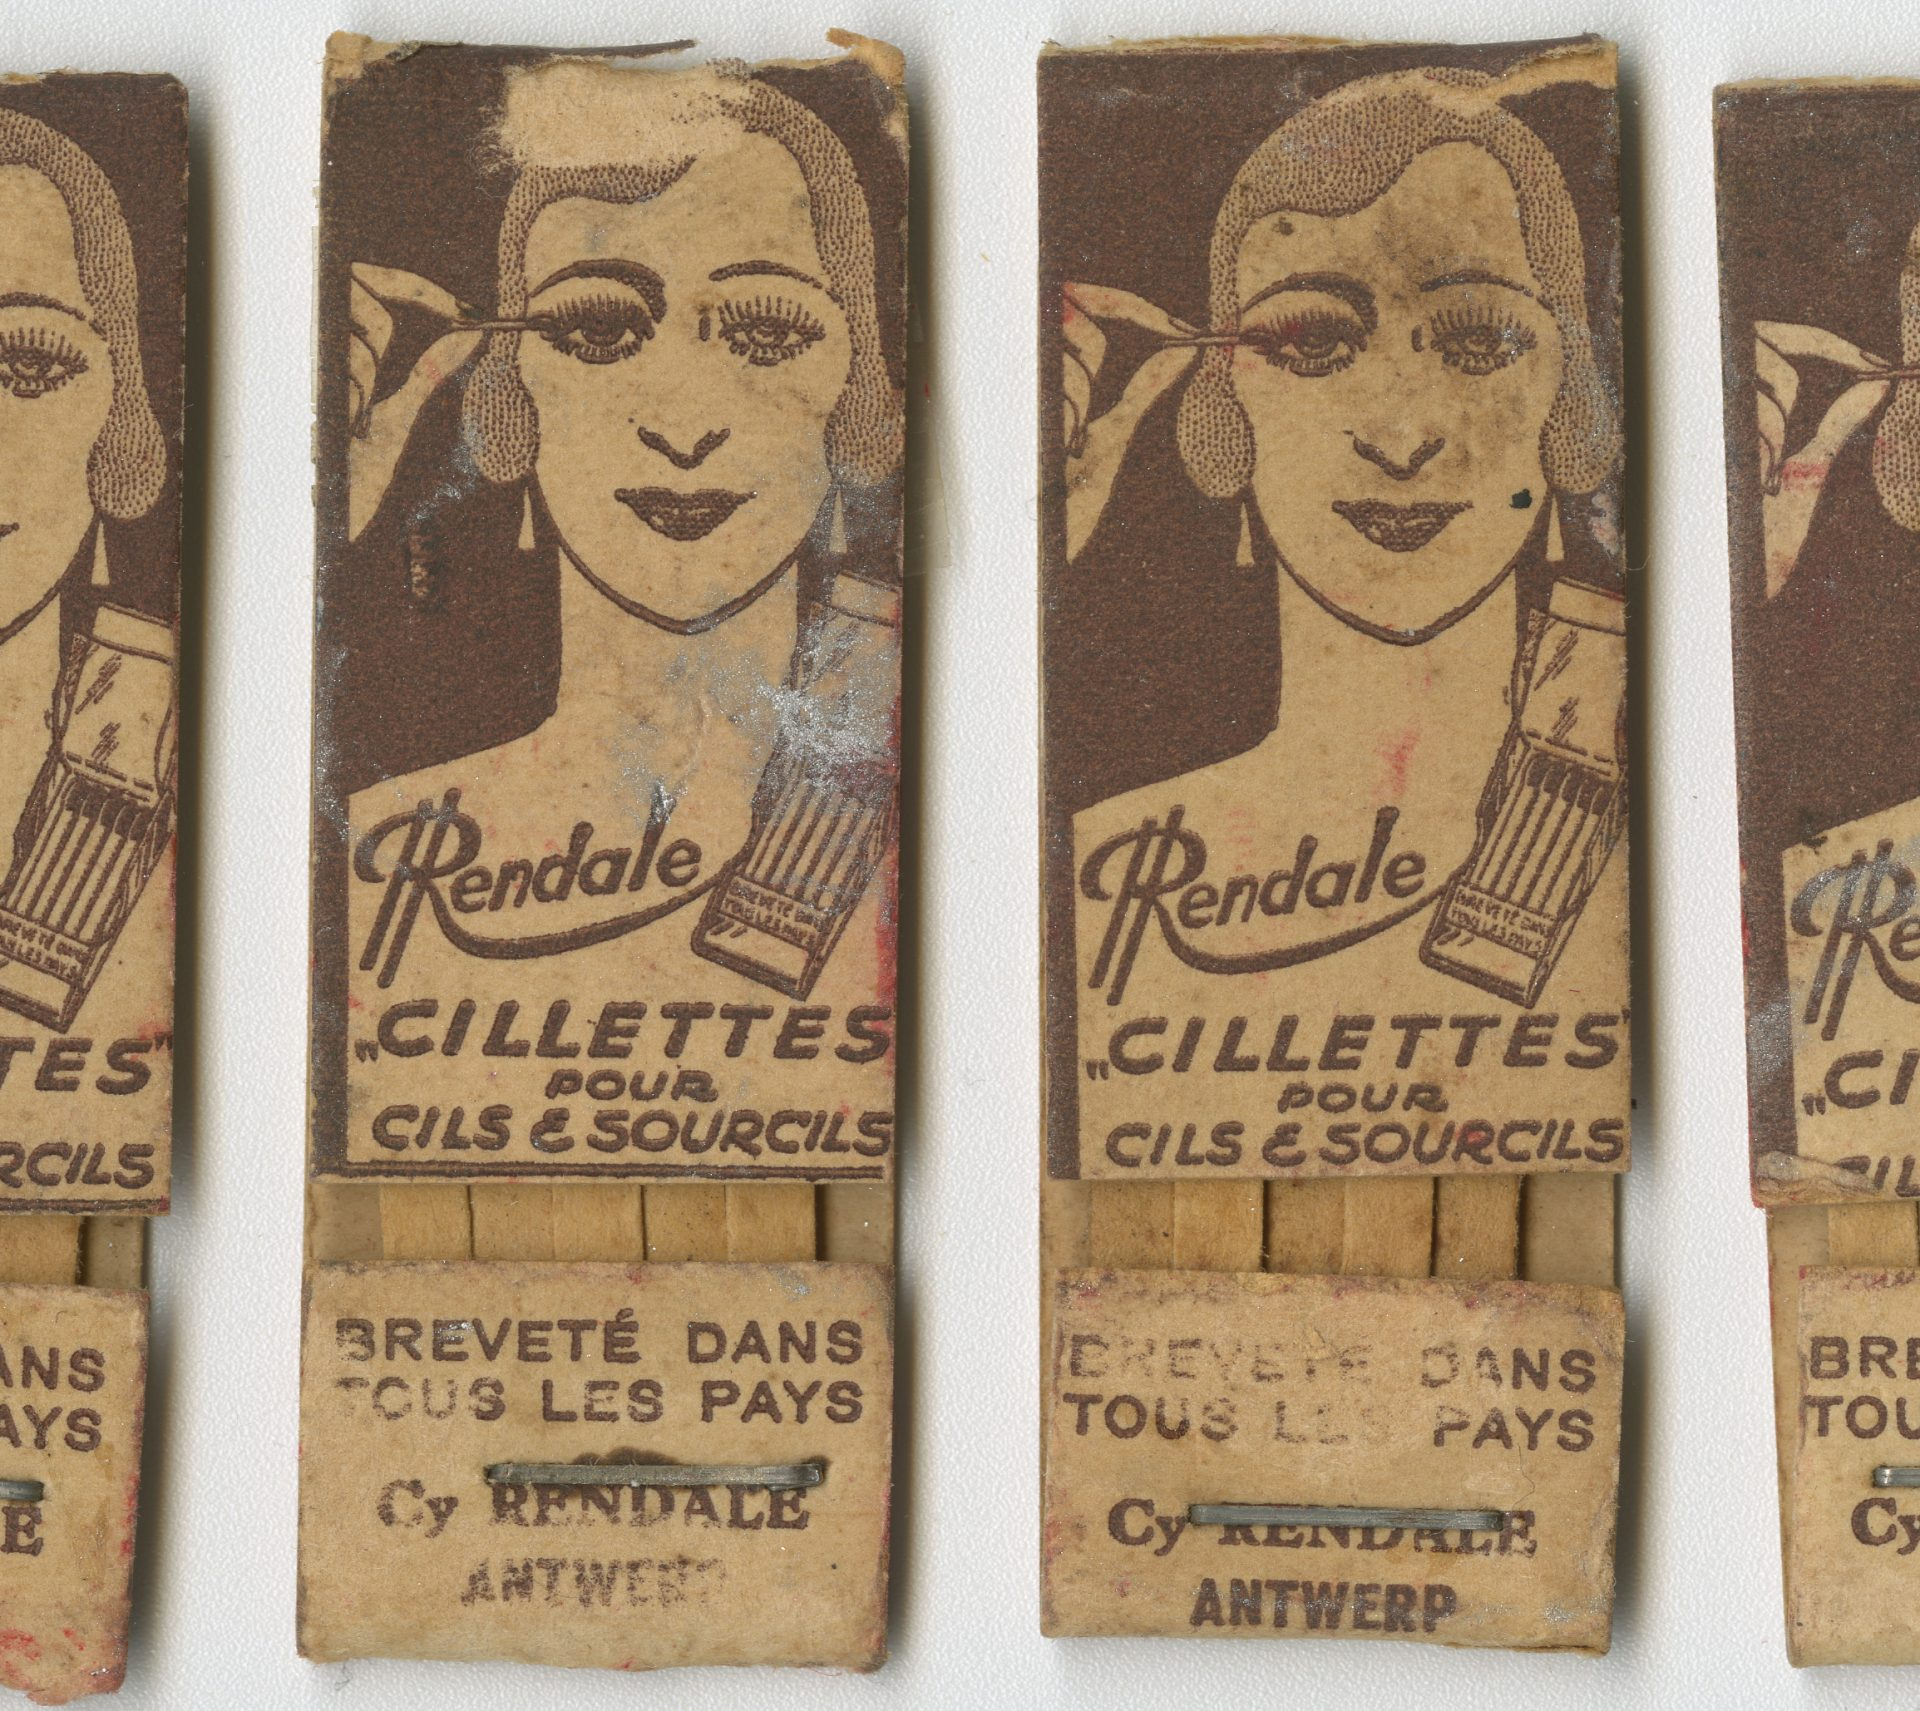 "This cardboard package contains ""cillettes"", a cosmetic product for eyelashes and brows. Cillettes resemble small matches with ends tinted with brown powder."